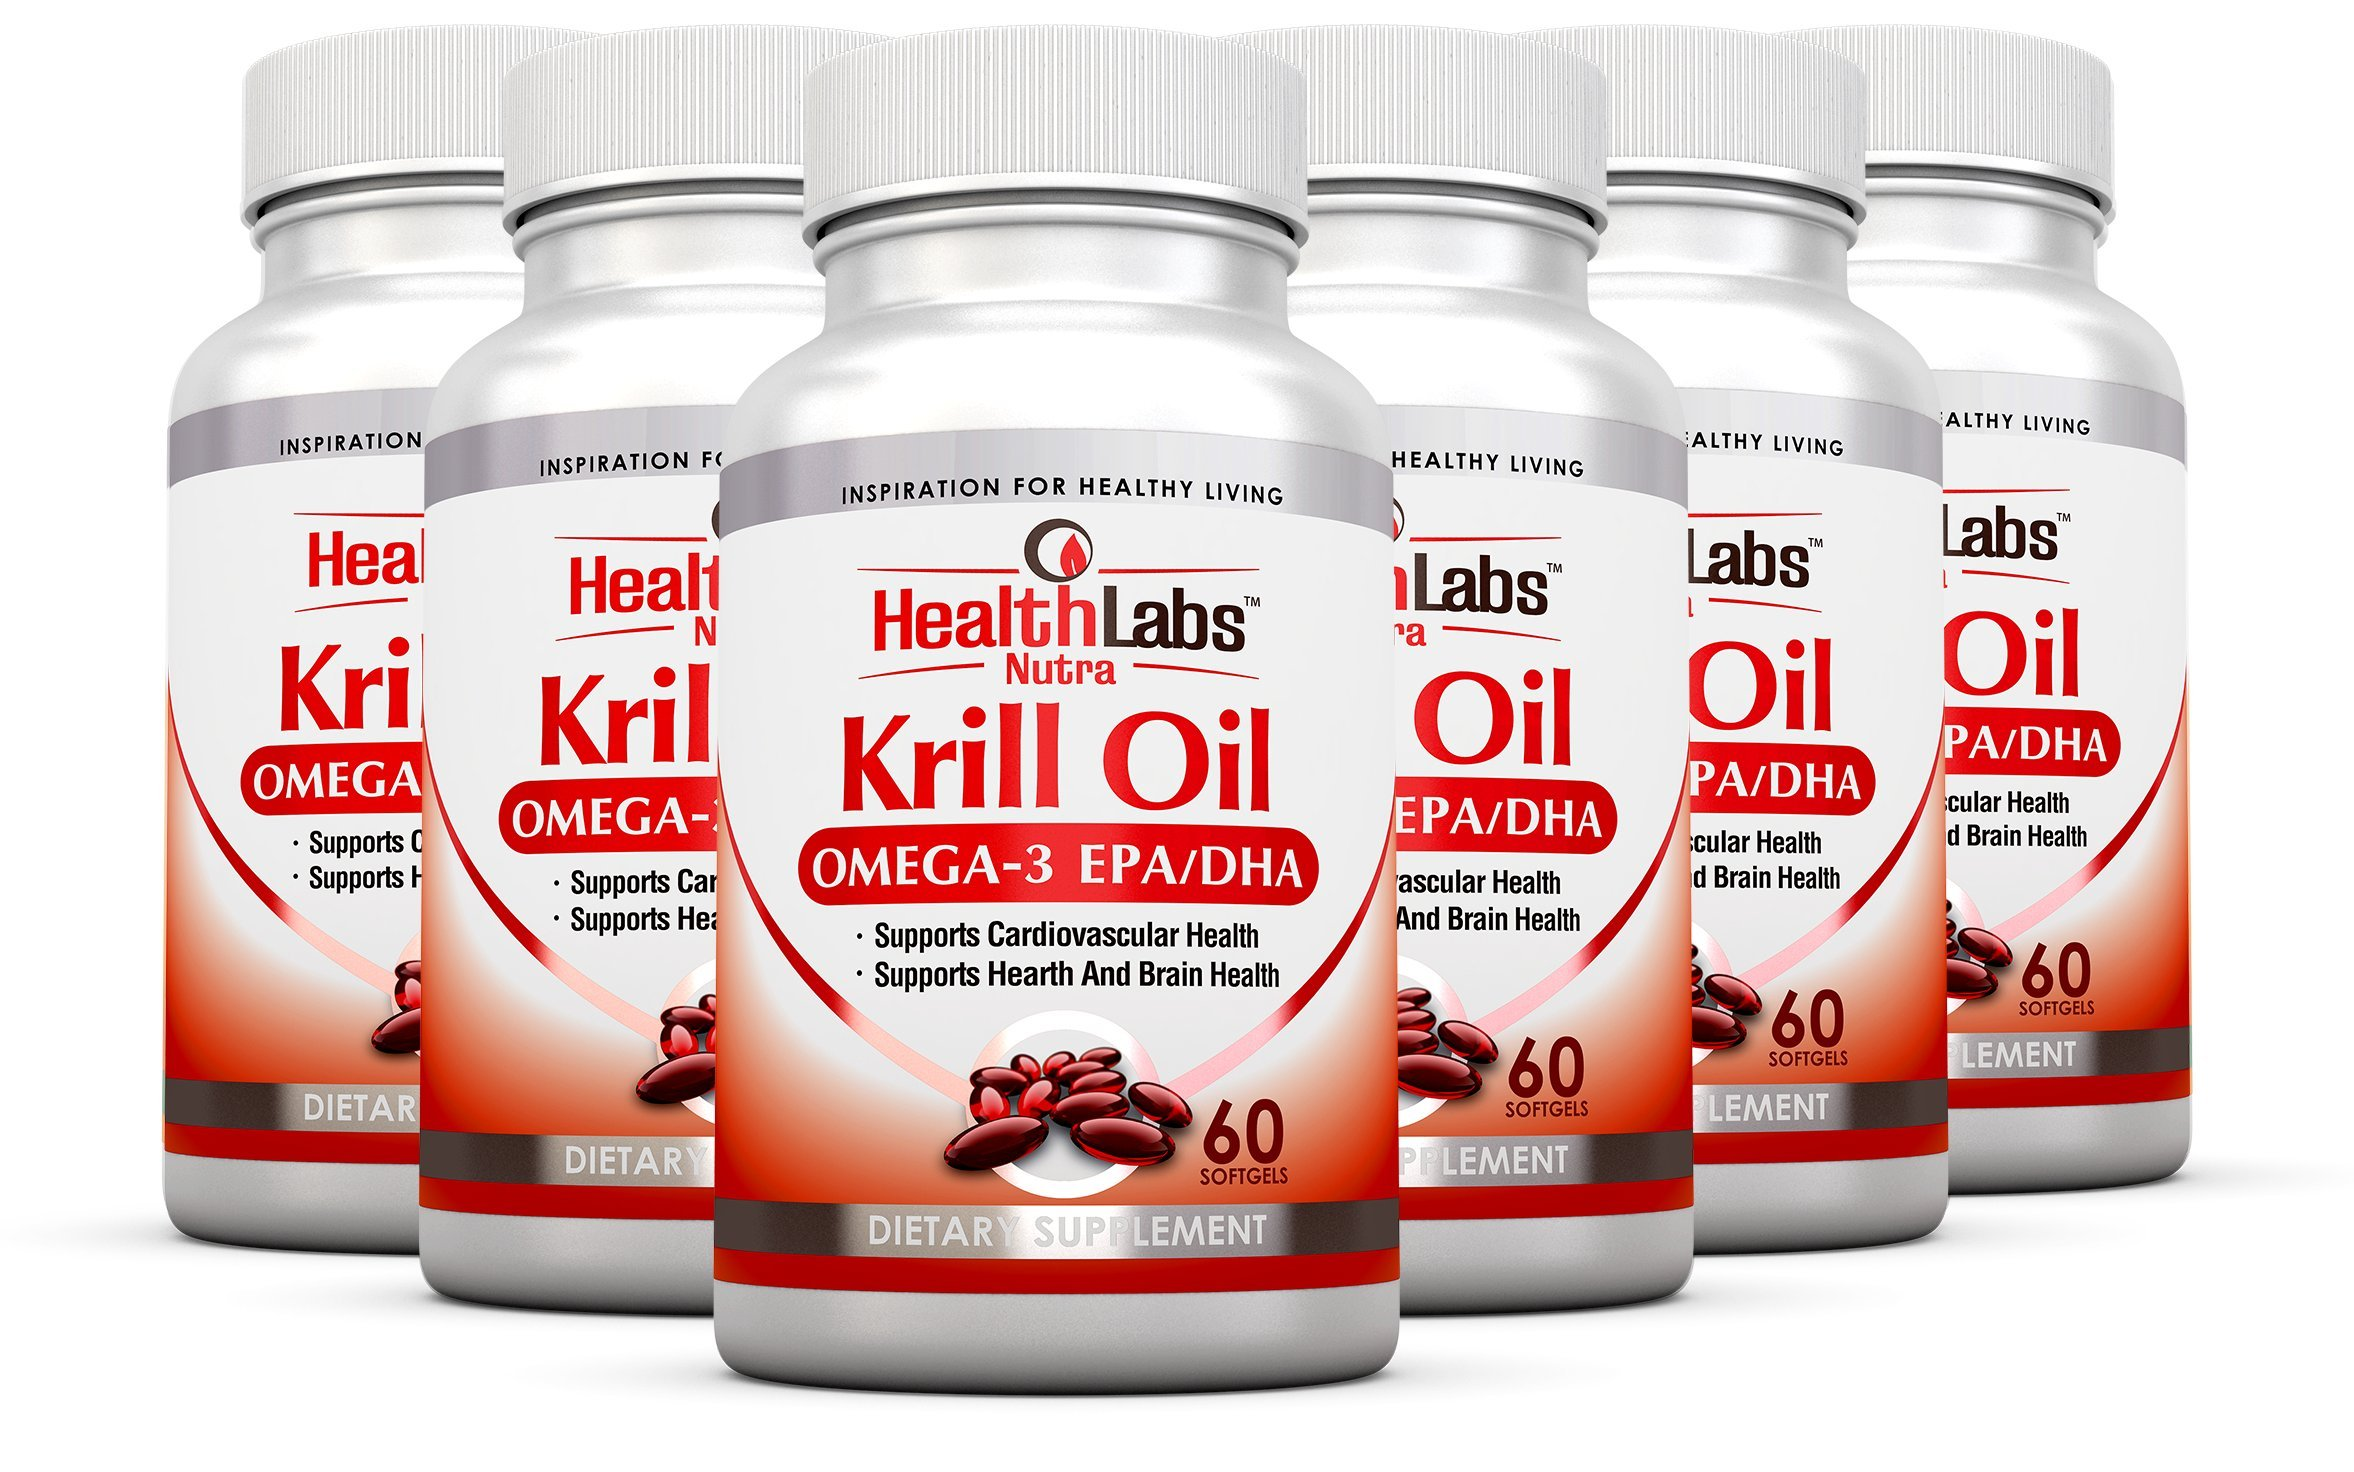 Health Labs Nutra Omega 3 Krill Oil 6-Month supply 1000 mg Highest Concentration of Omega-3's 6's, 9's DHA/EPA - (Pack of 6)